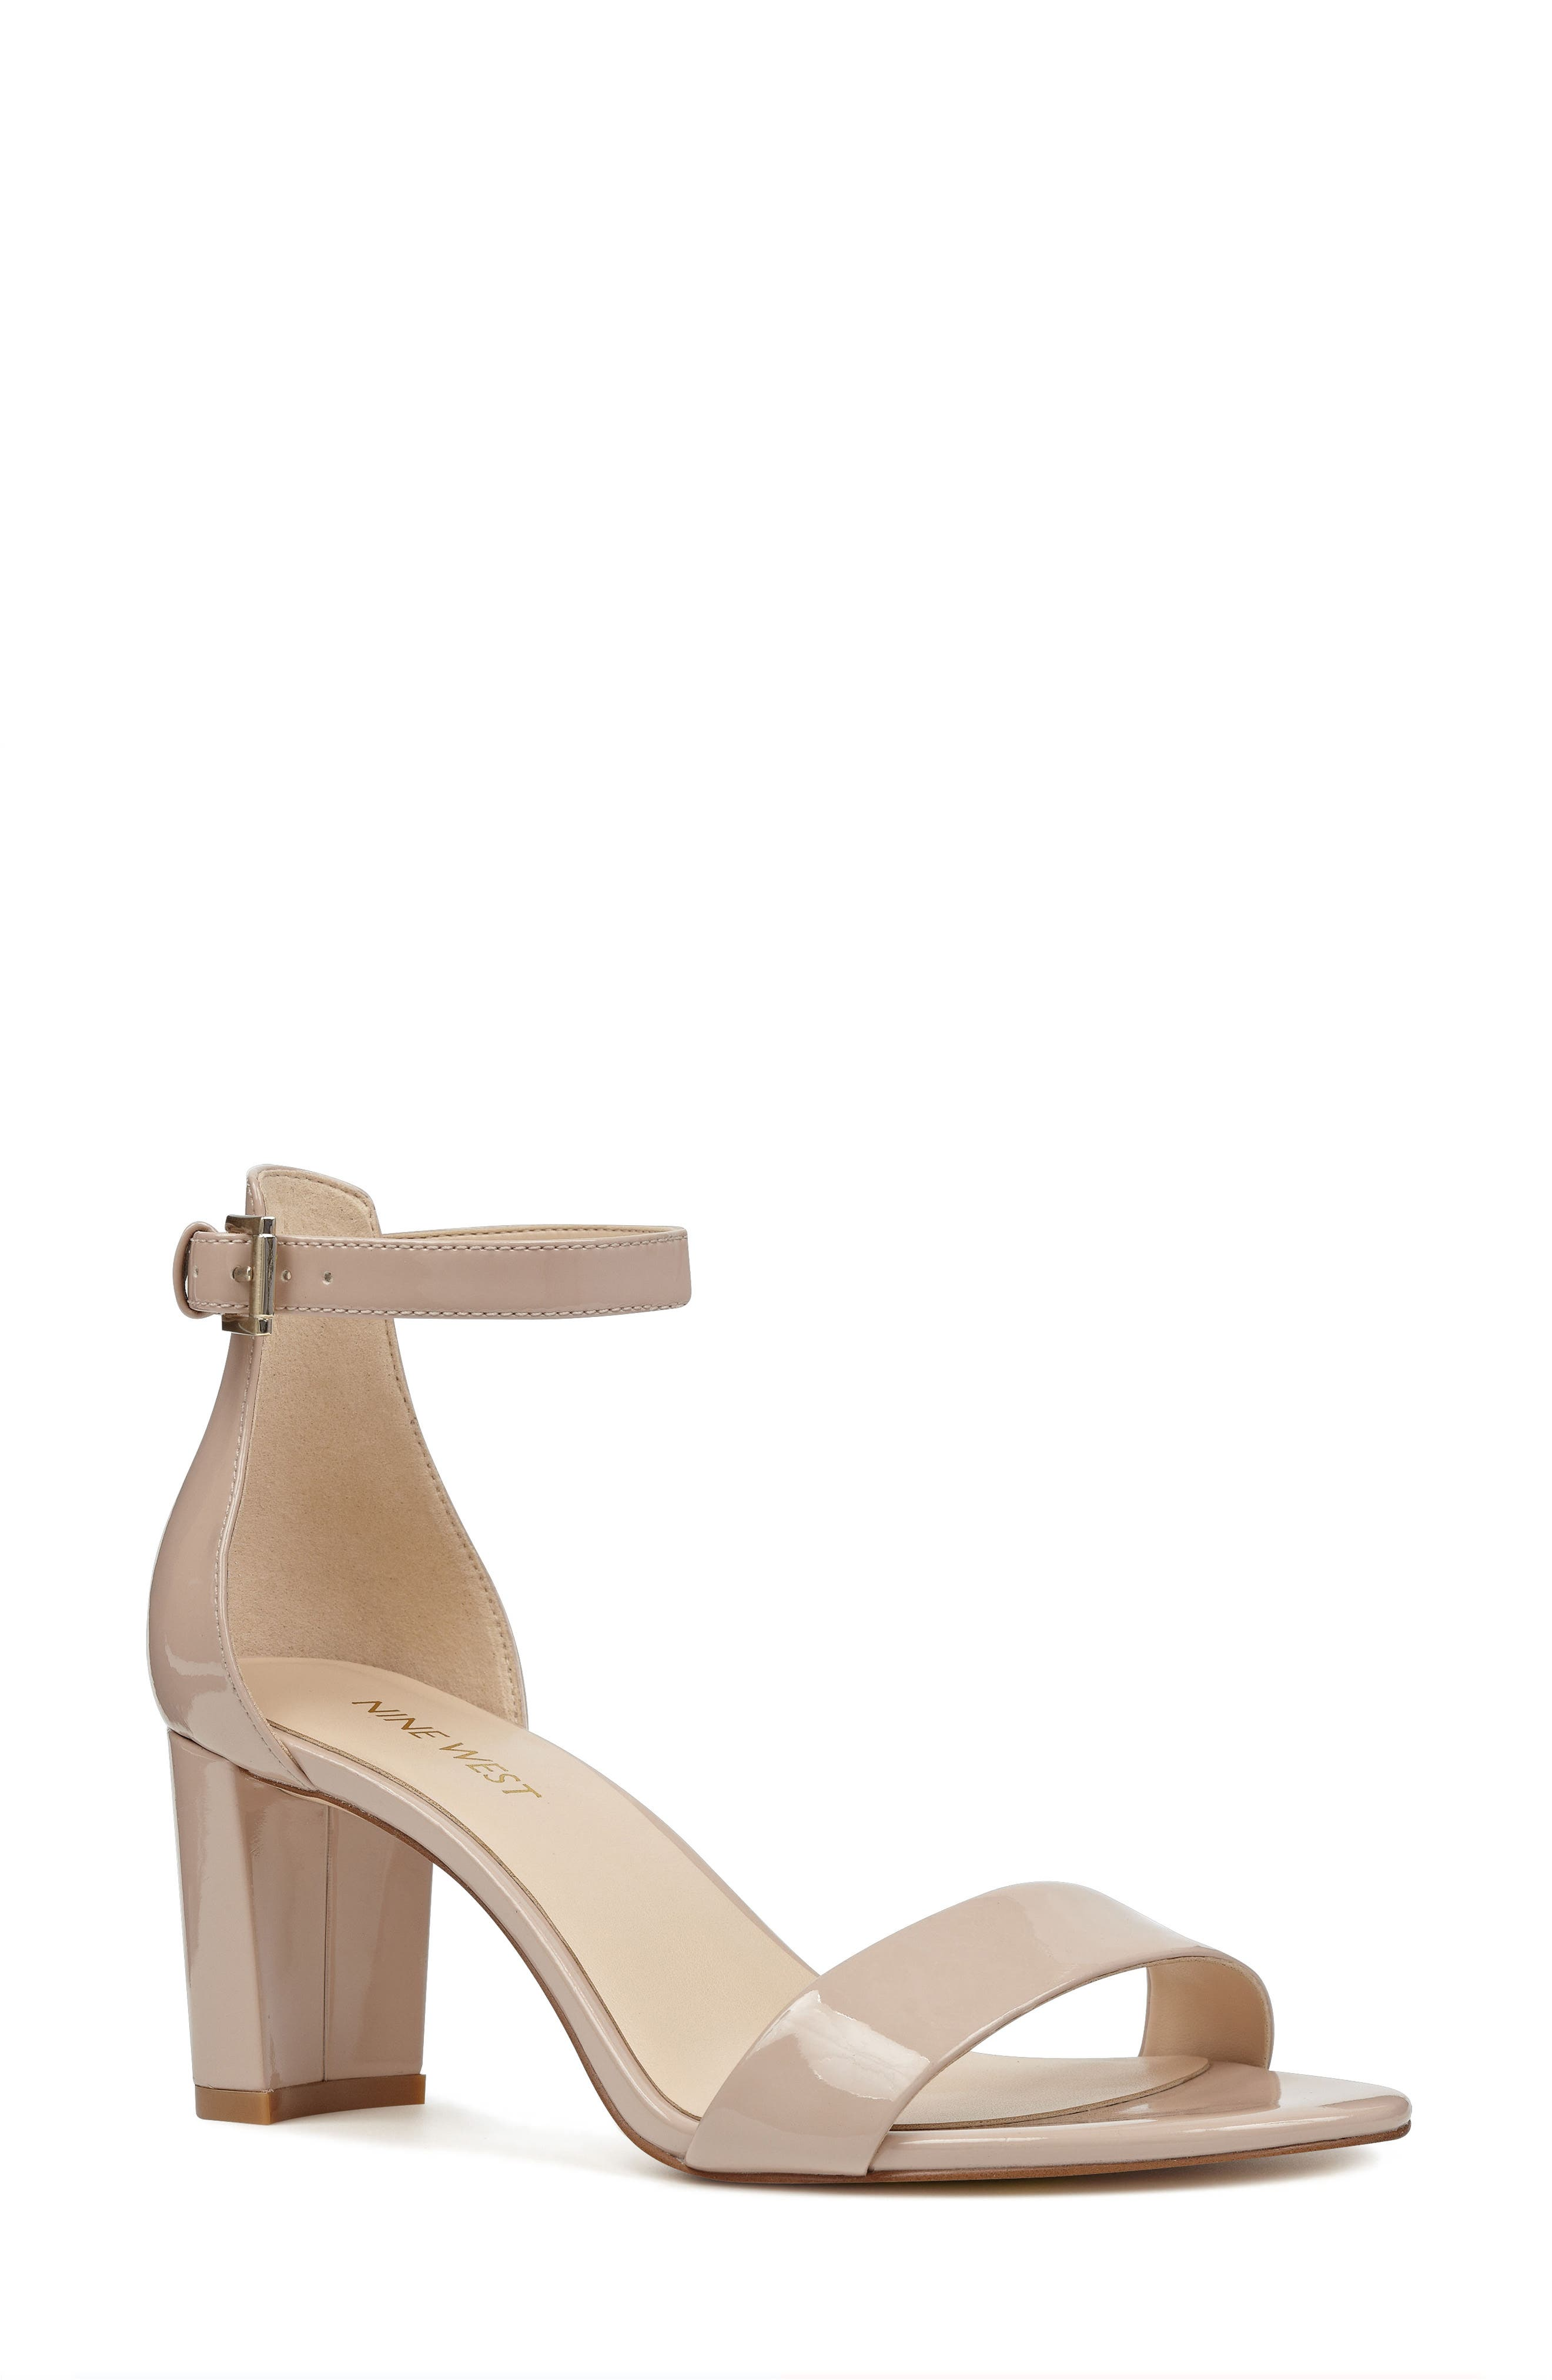 Pruce Ankle Strap Sandal,                         Main,                         color, Natural Patent